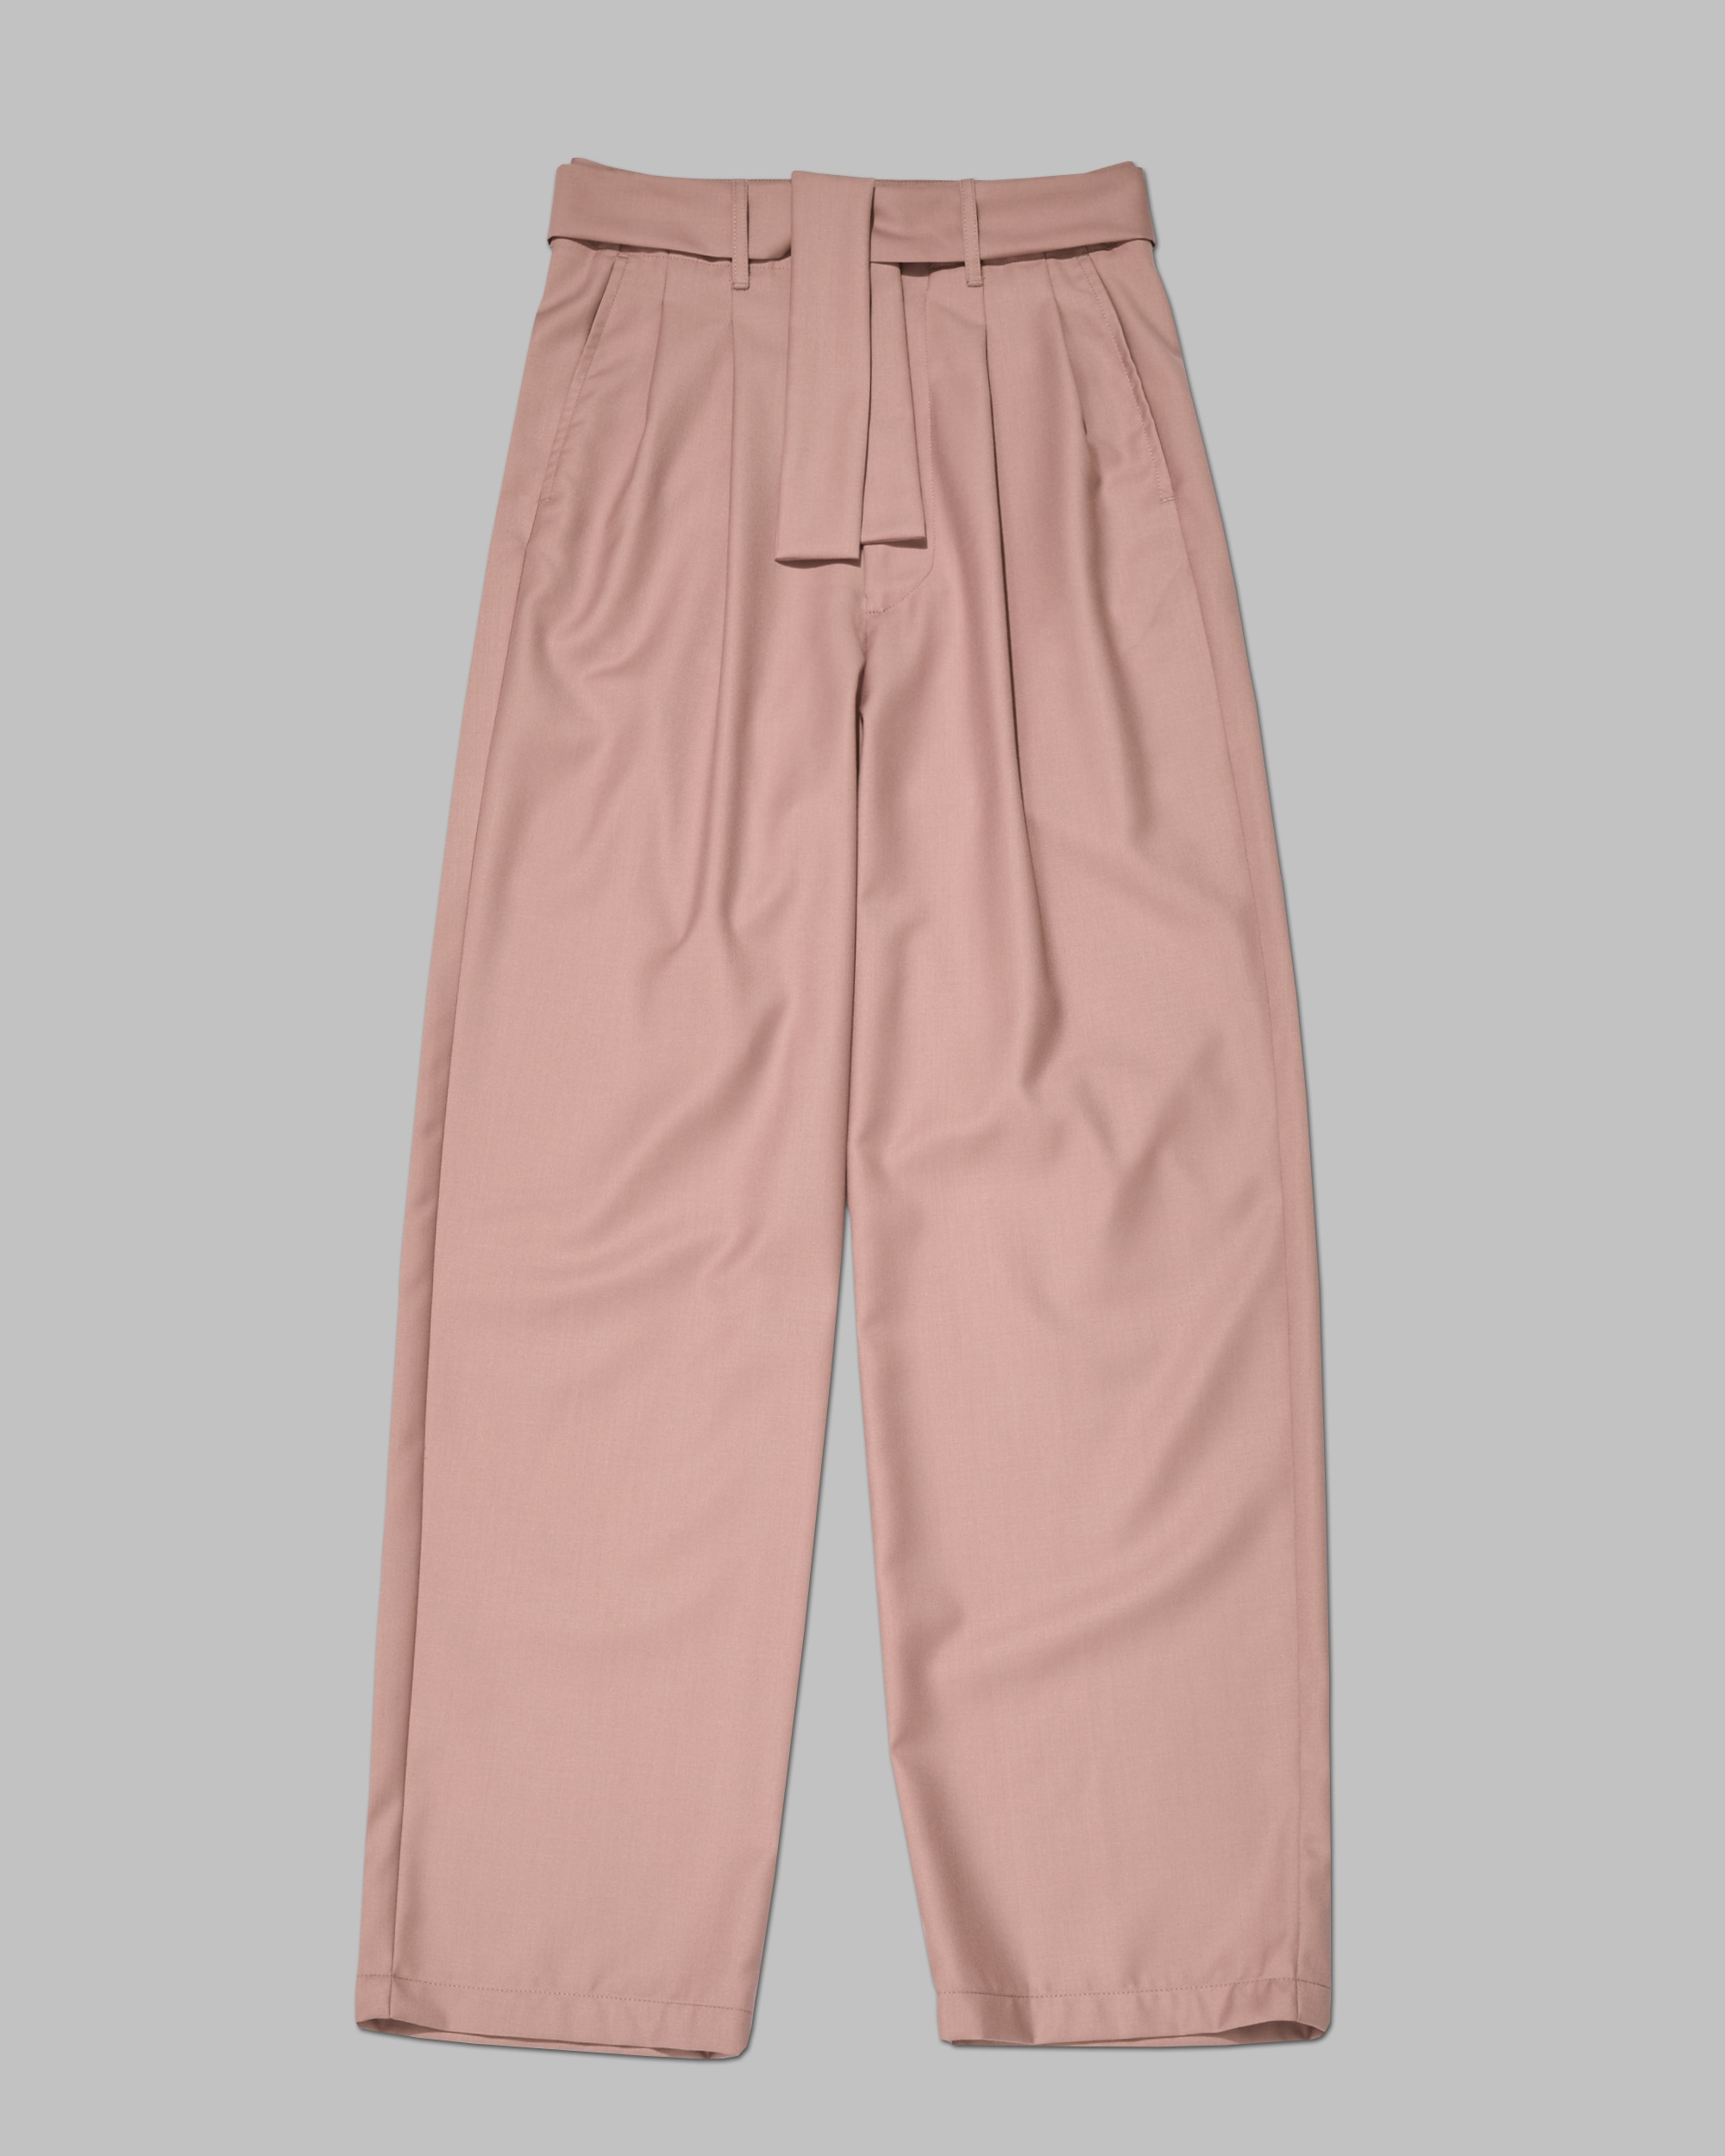 Shop Best Gender Neutral Pants. High Waisted, Pleated Pant In Pink.